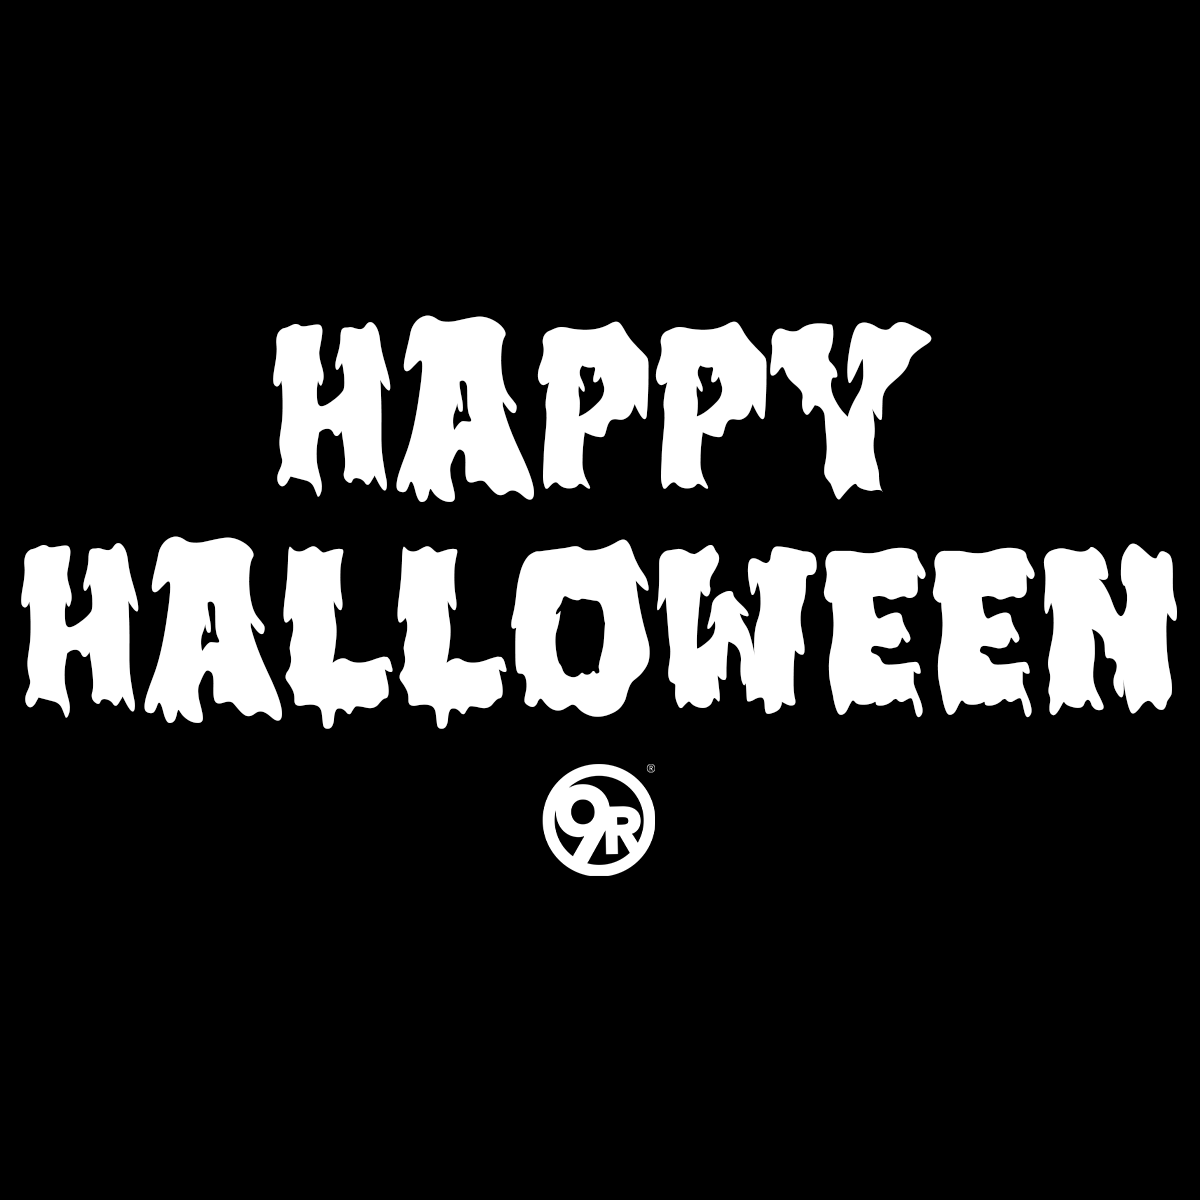 Get ready to get spooky and sweaty, #9RoundNation! We've got a spine-chilling workout for you today, filled with Beast Burpees and Haunted Hooks!   #9RoundFitness #Halloween #HalloweenWorkout https://t.co/6cyRILgaSA